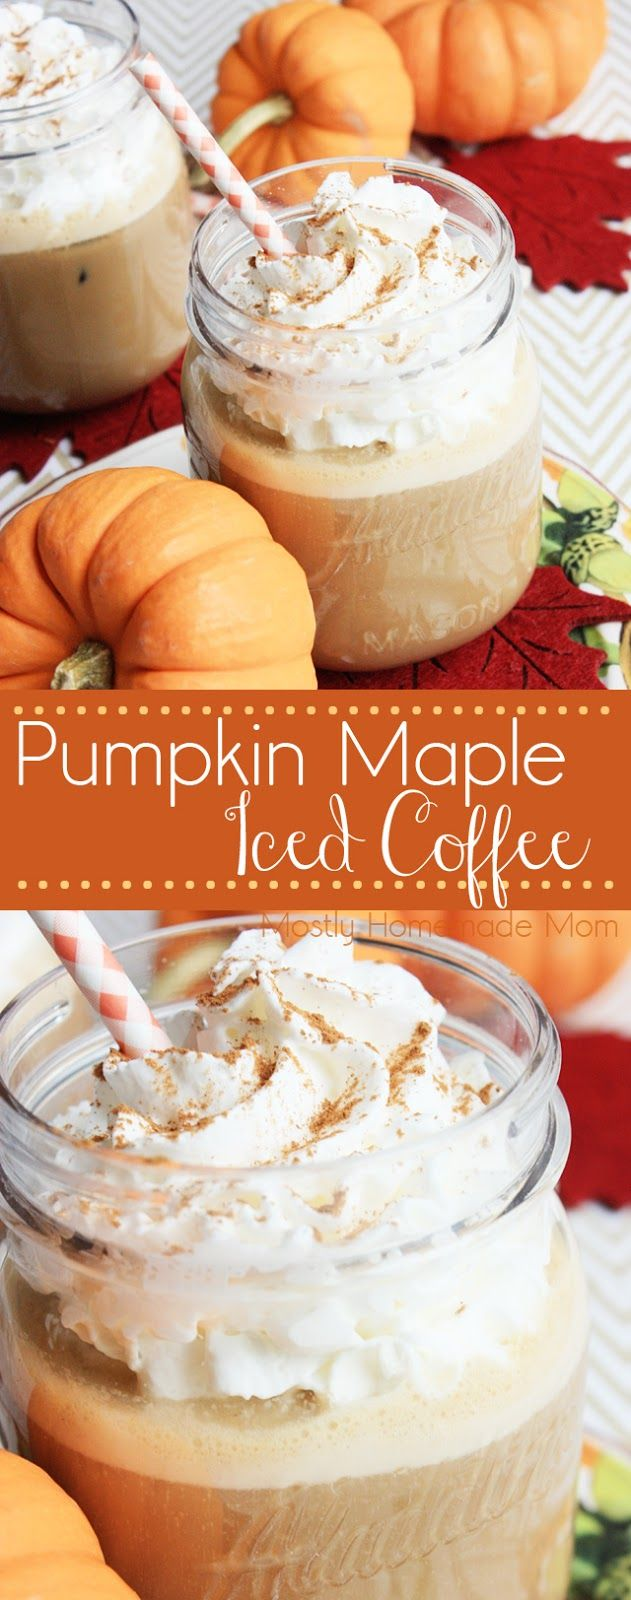 Pumpkin Maple Iced Coffee - Pumpkin spice, maple, and whipped cream with your favorite iced coffee - the perfect fall twist to the best drink ever! #FoundMyDelight #ad